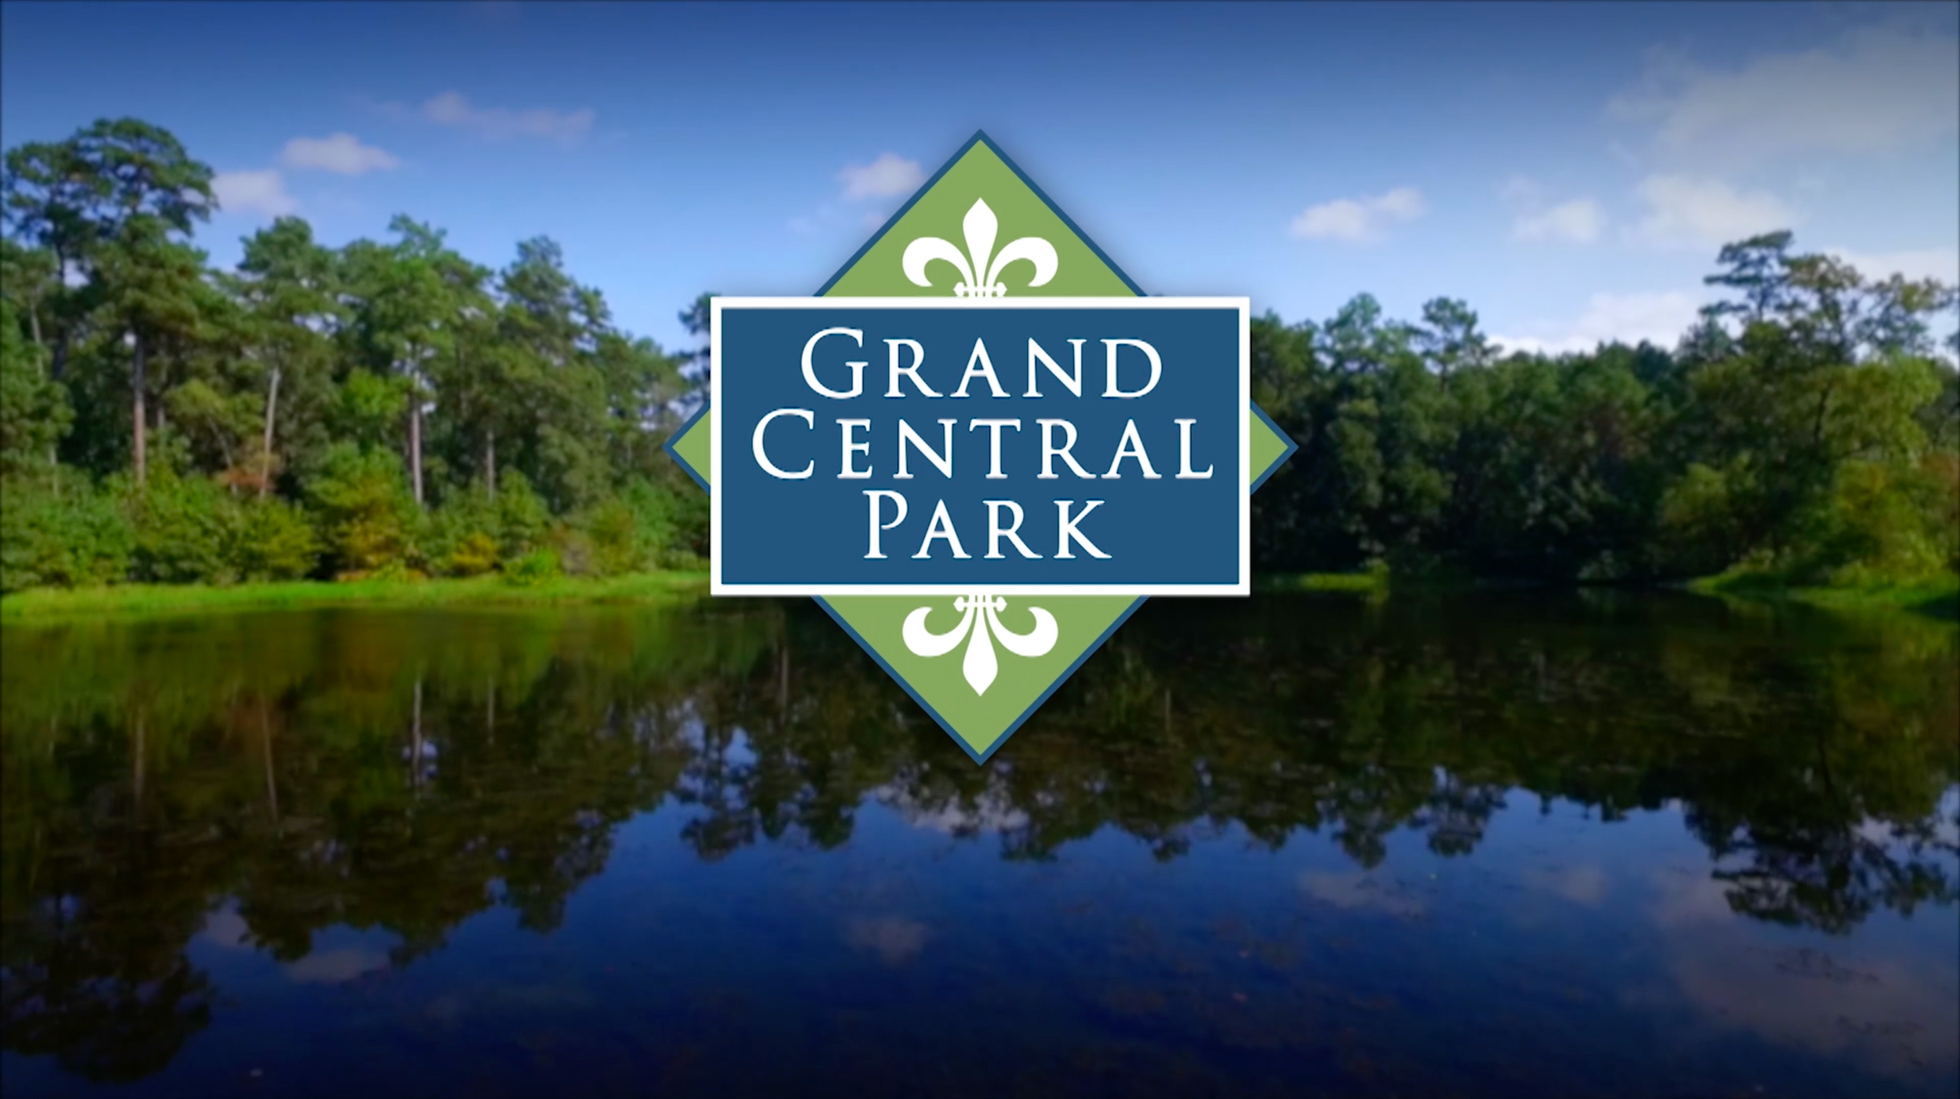 Grand Central Park   Immerse Yourself into GCP